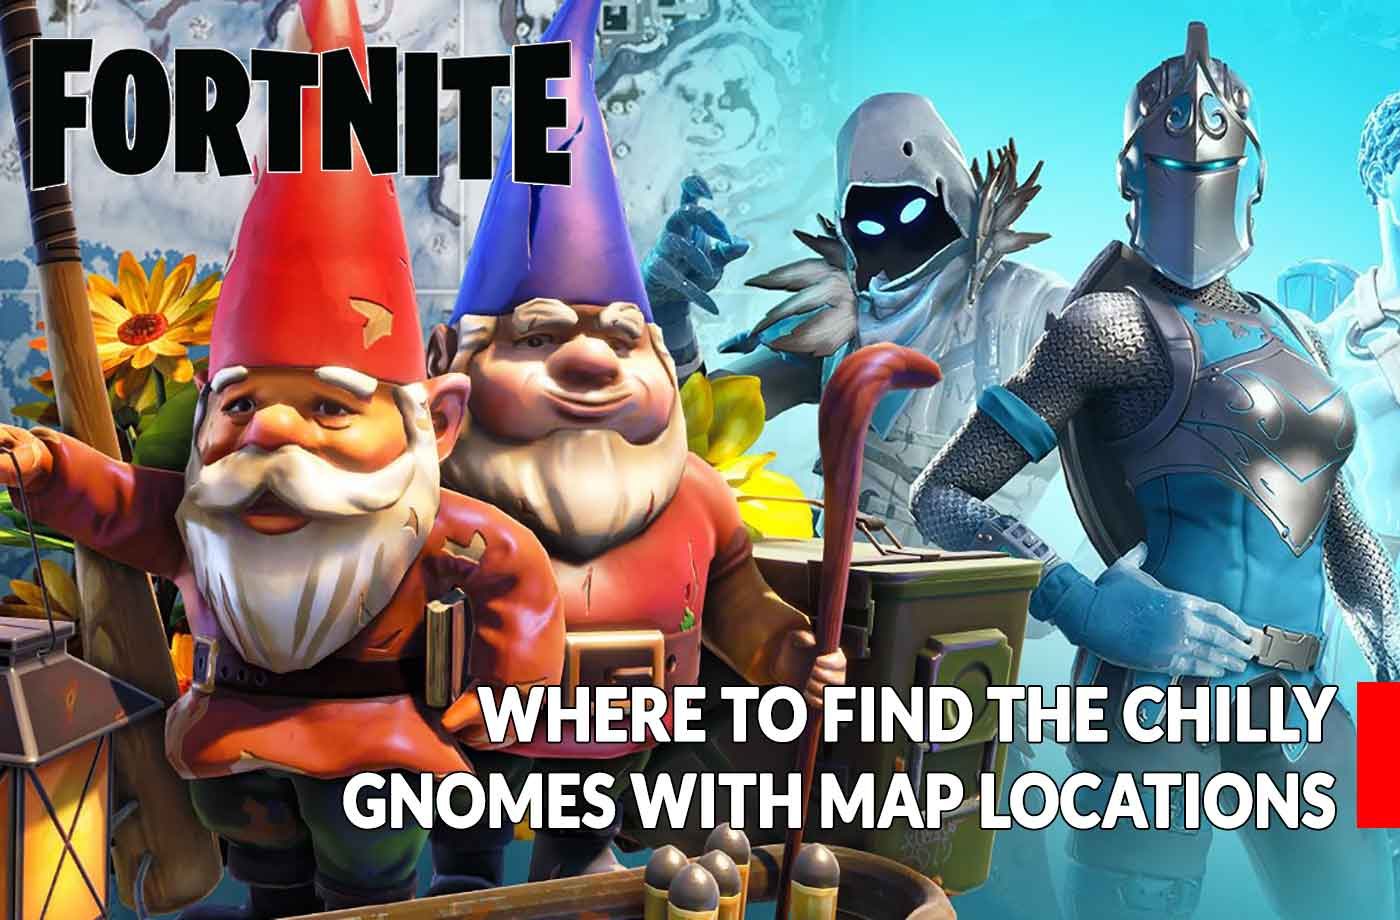 fortnite challenge week 6 season 7 where to find the chilly gnomes - viking village fortnite season 7